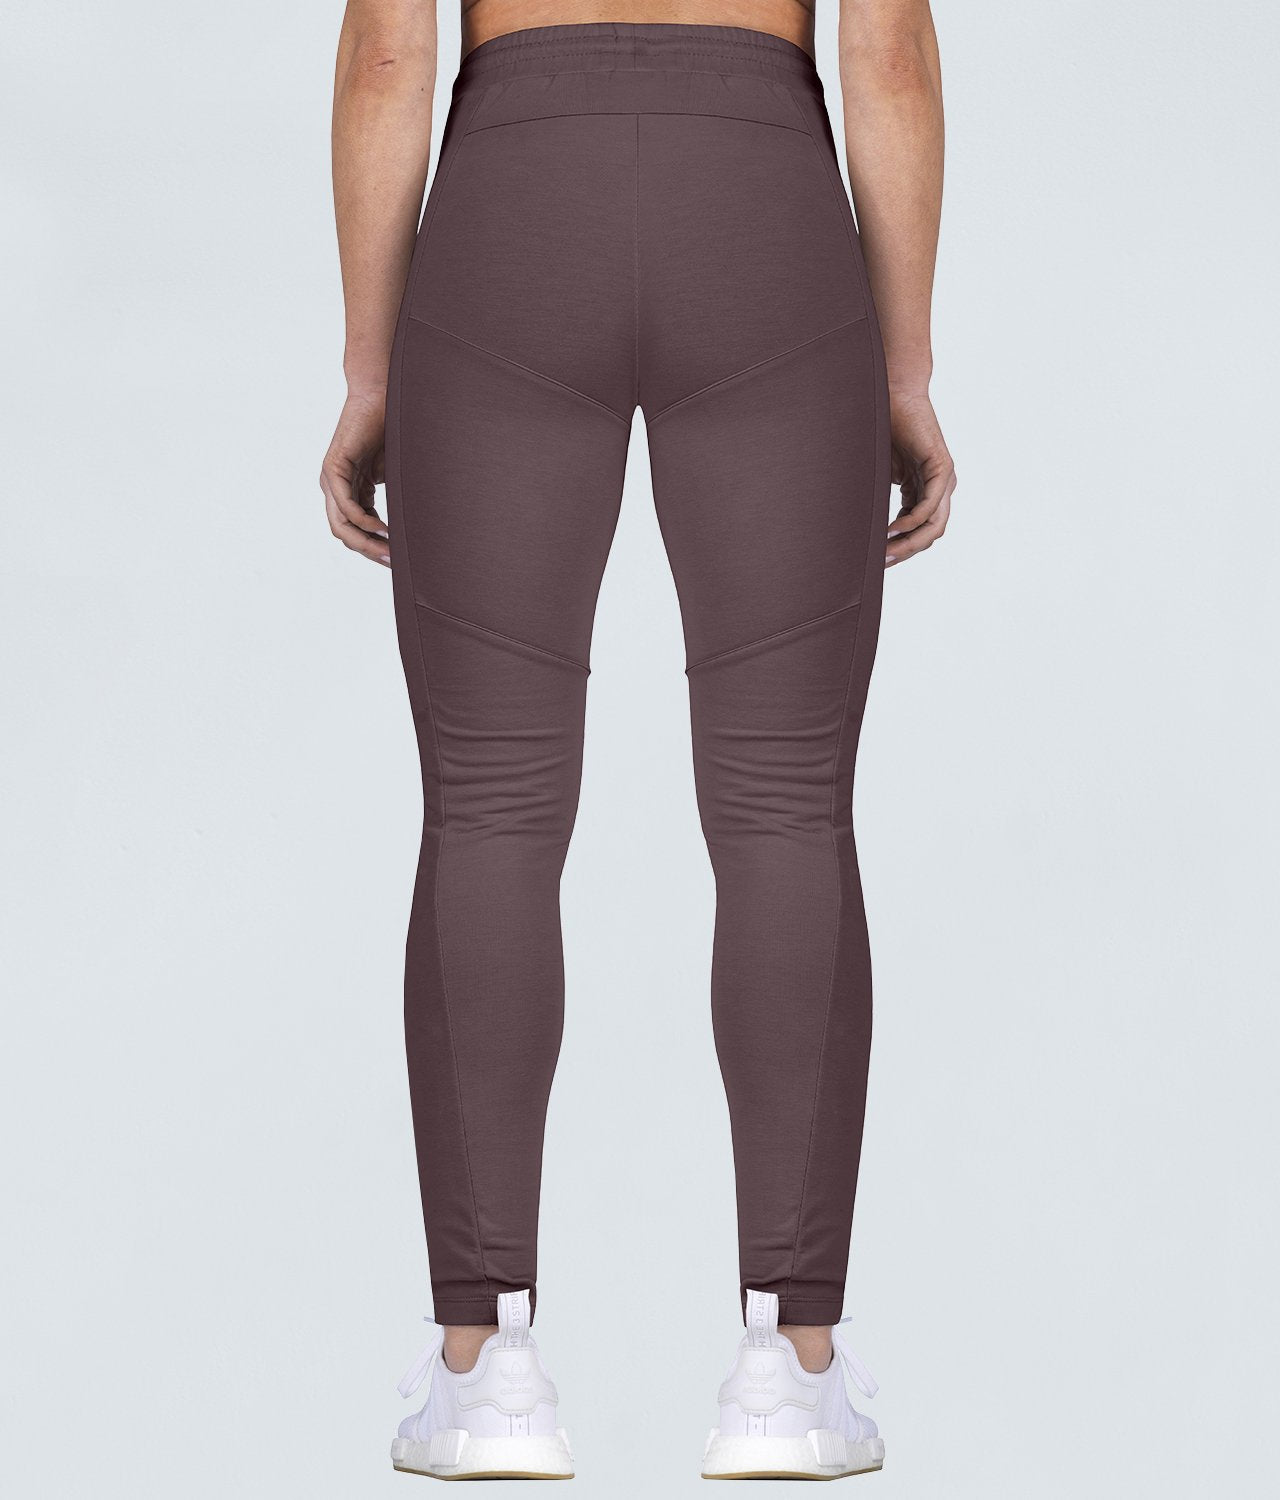 Born Tough Contoured Elastic Pocket Ash Brown Gym Workout Tracksuit Jogger Leggings for Women